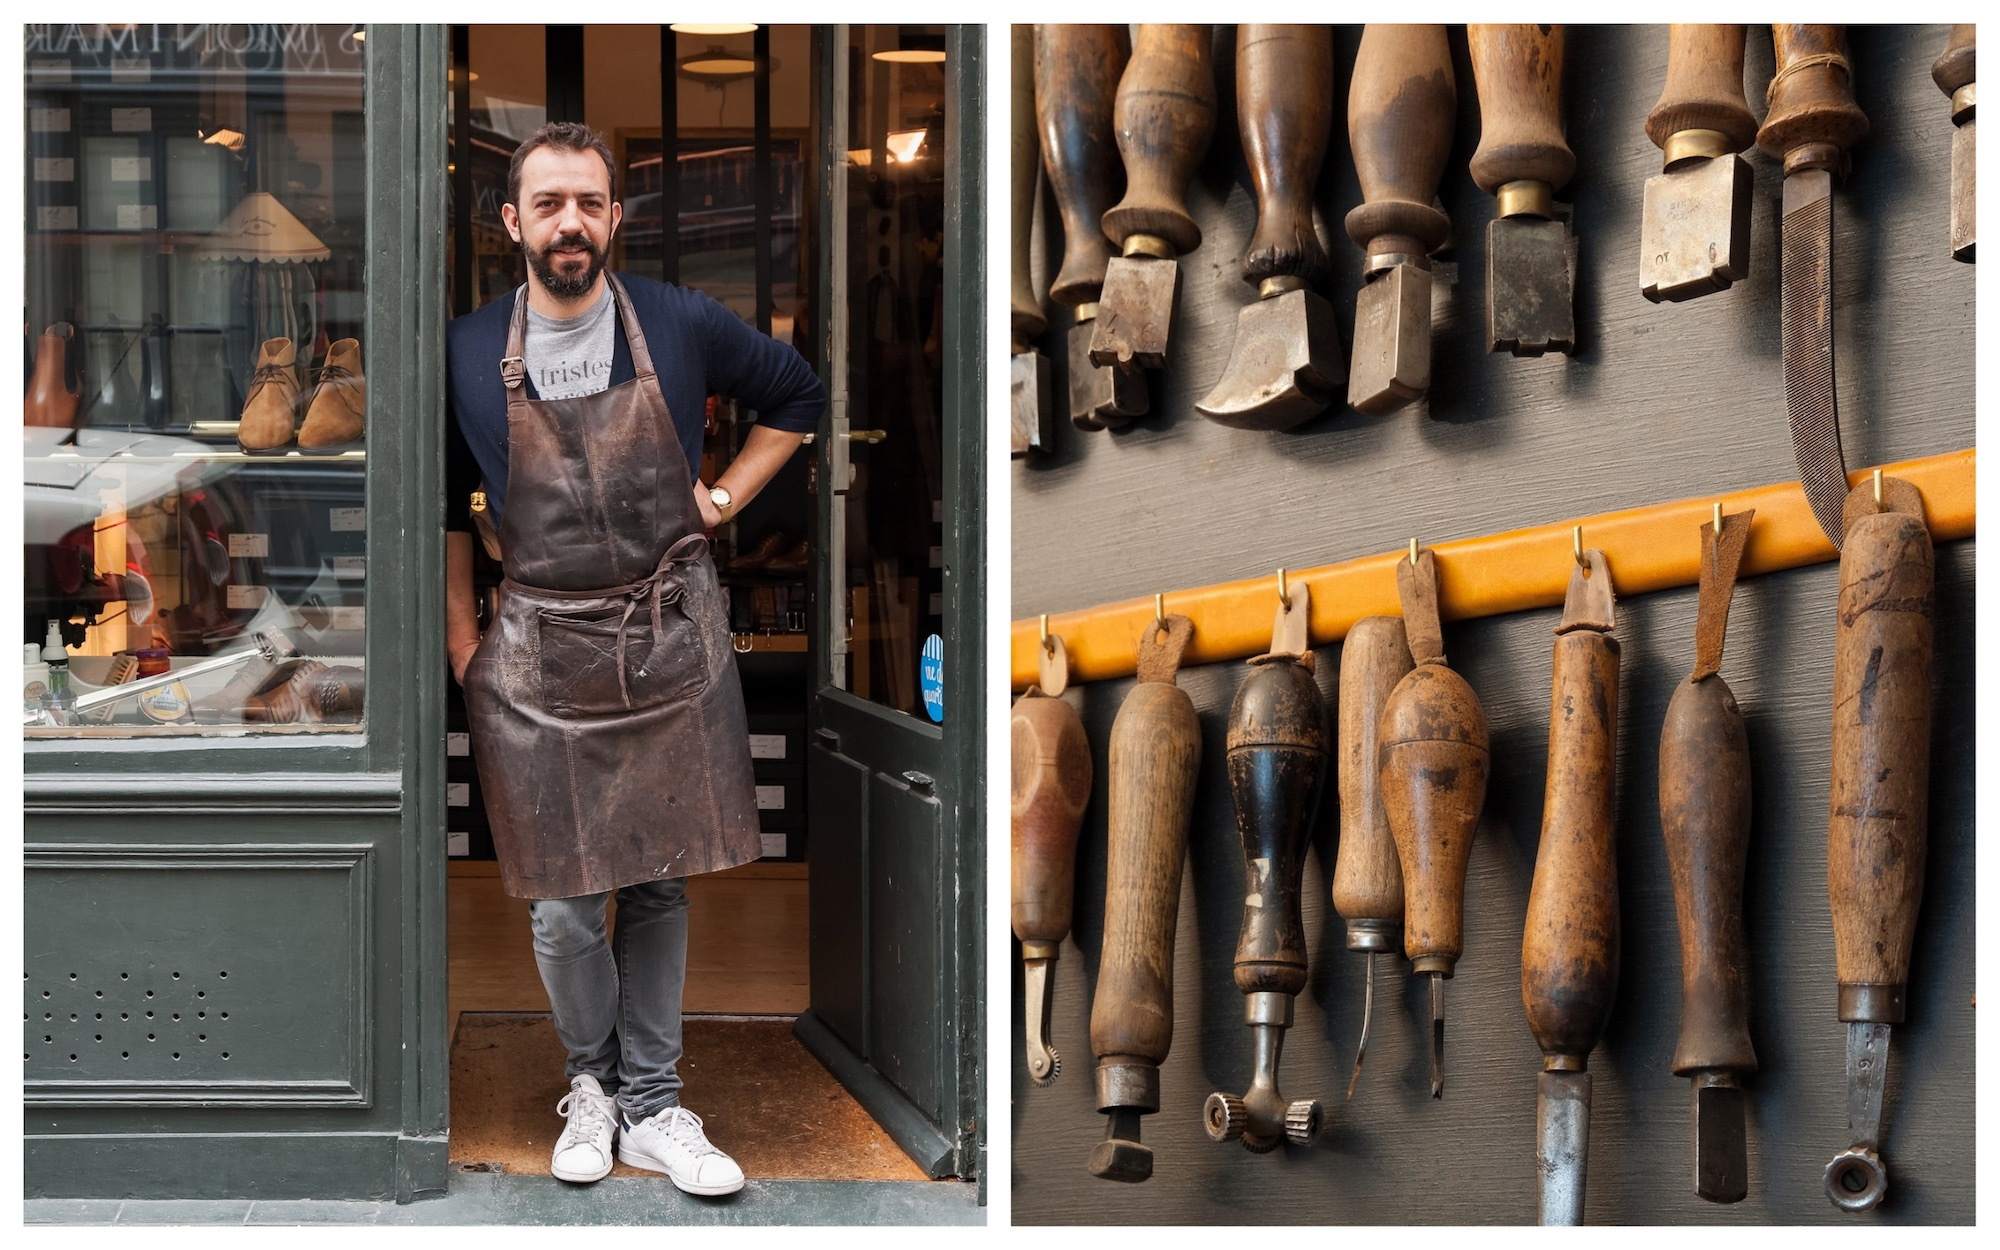 HiP Paris Blog checks out artisanal cobbler Atelier Constance in Montmartre